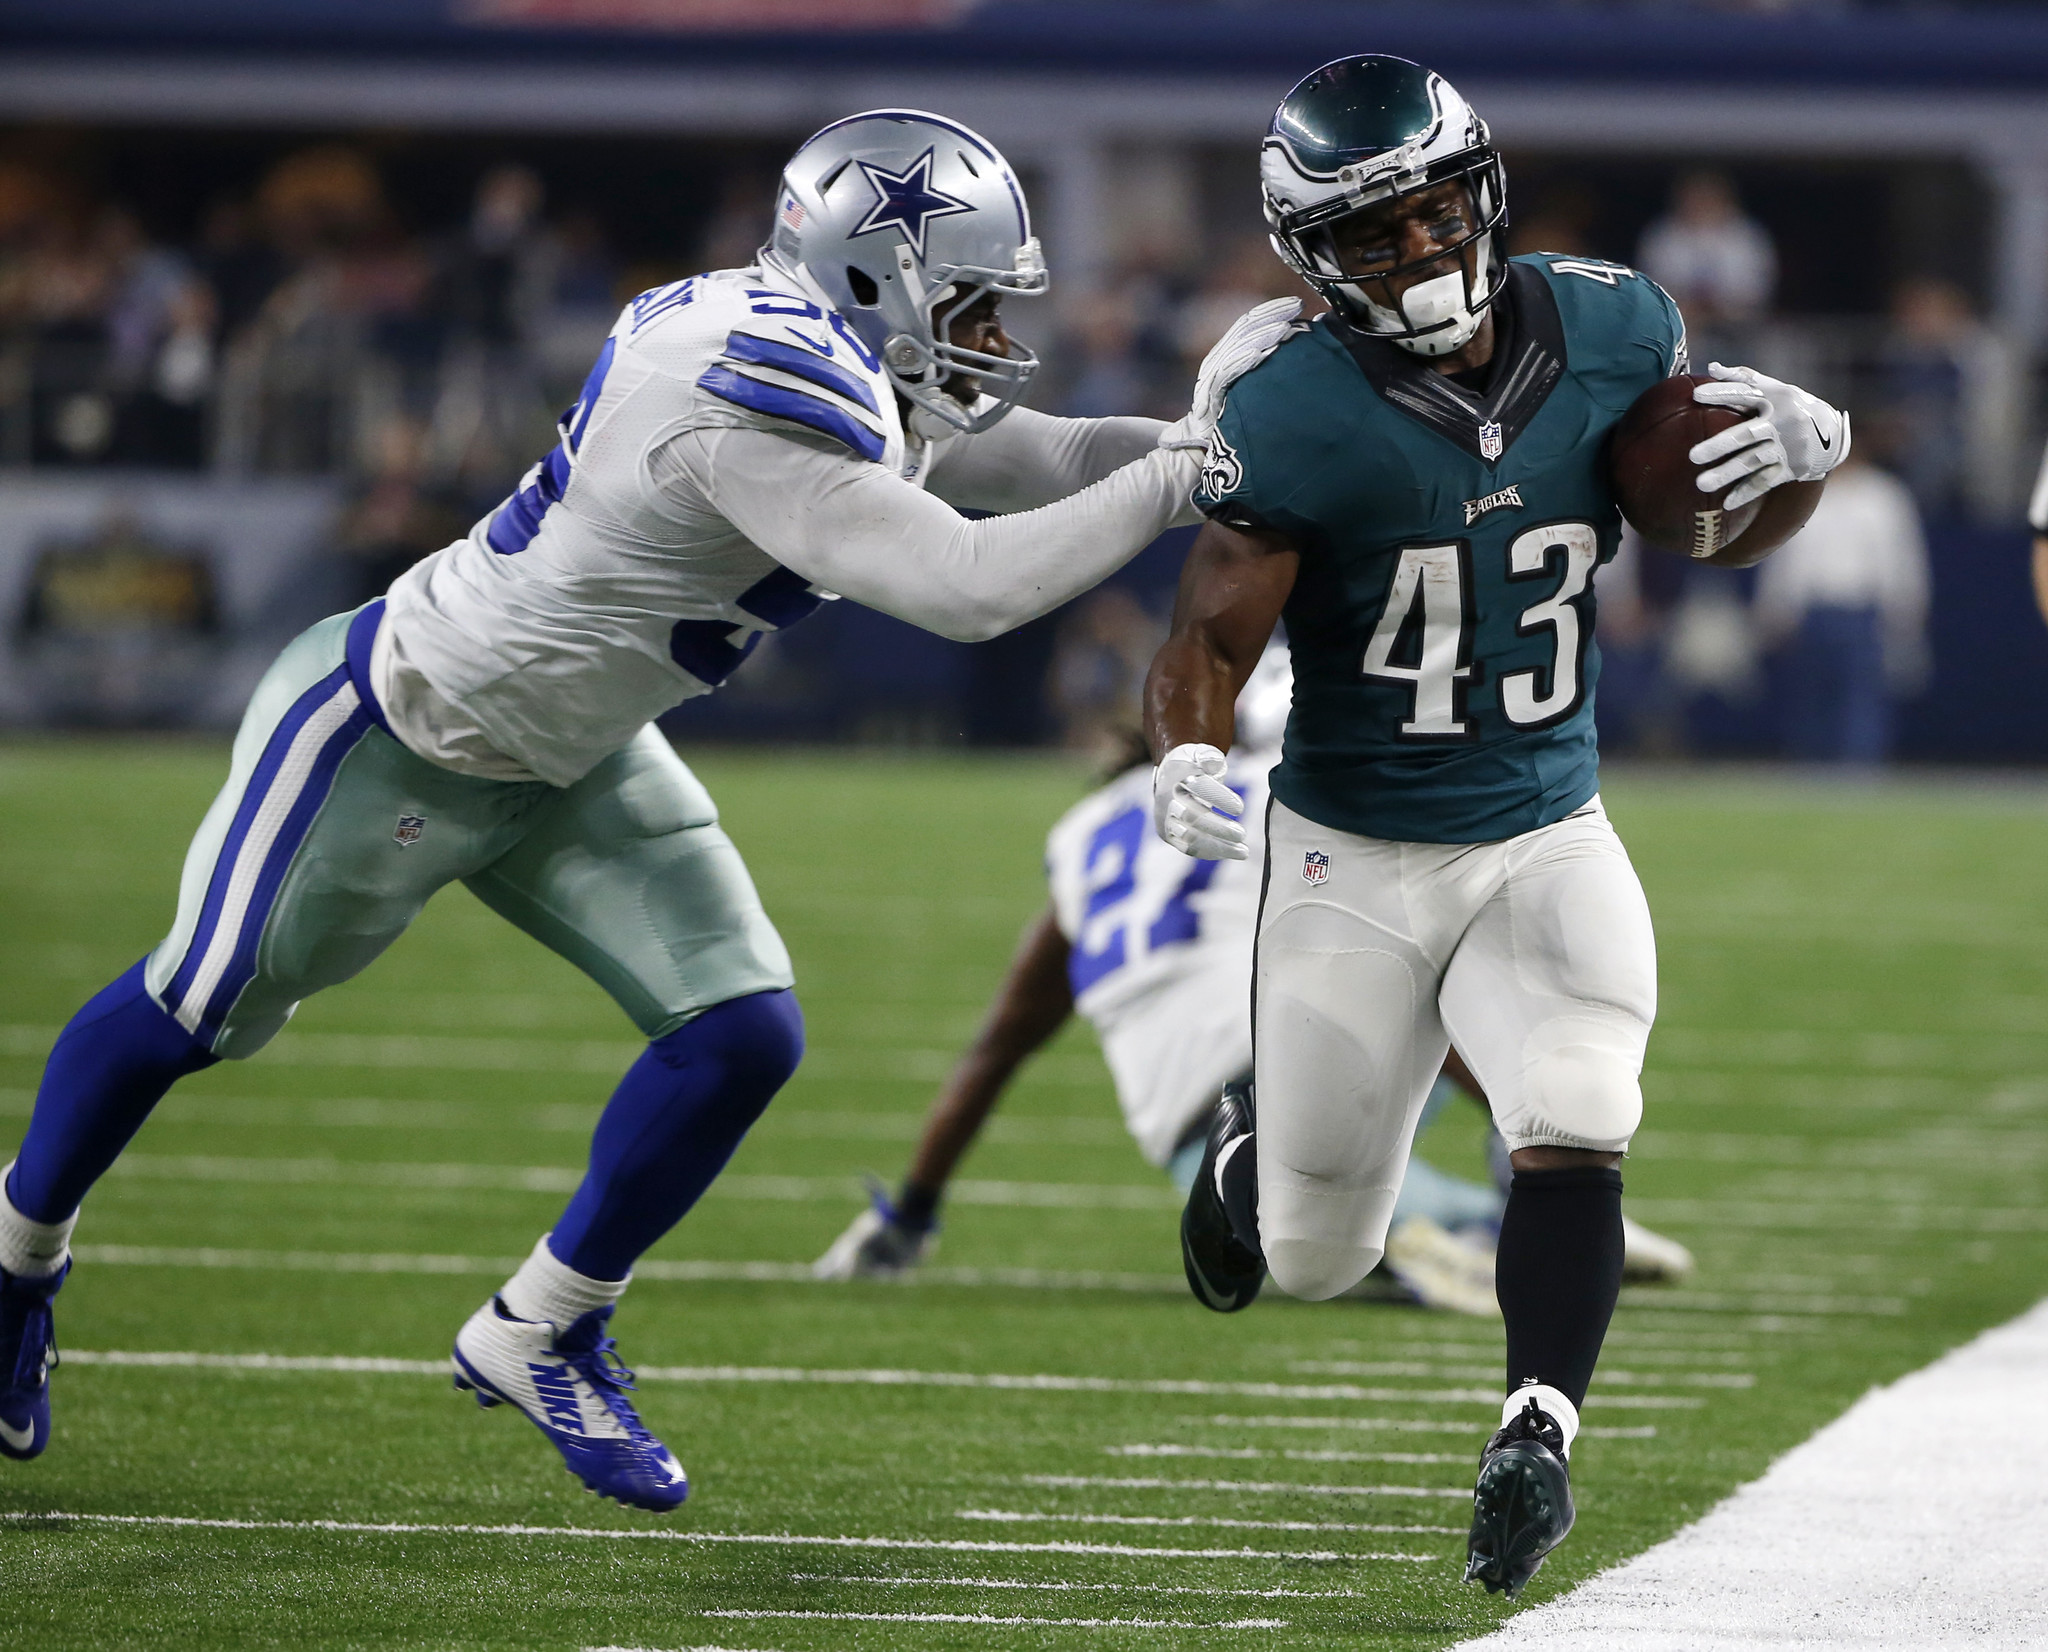 Mc-monday-morning-quarterback-what-have-we-learned-about-eagles-in-wake-of-latest-loss-20161031